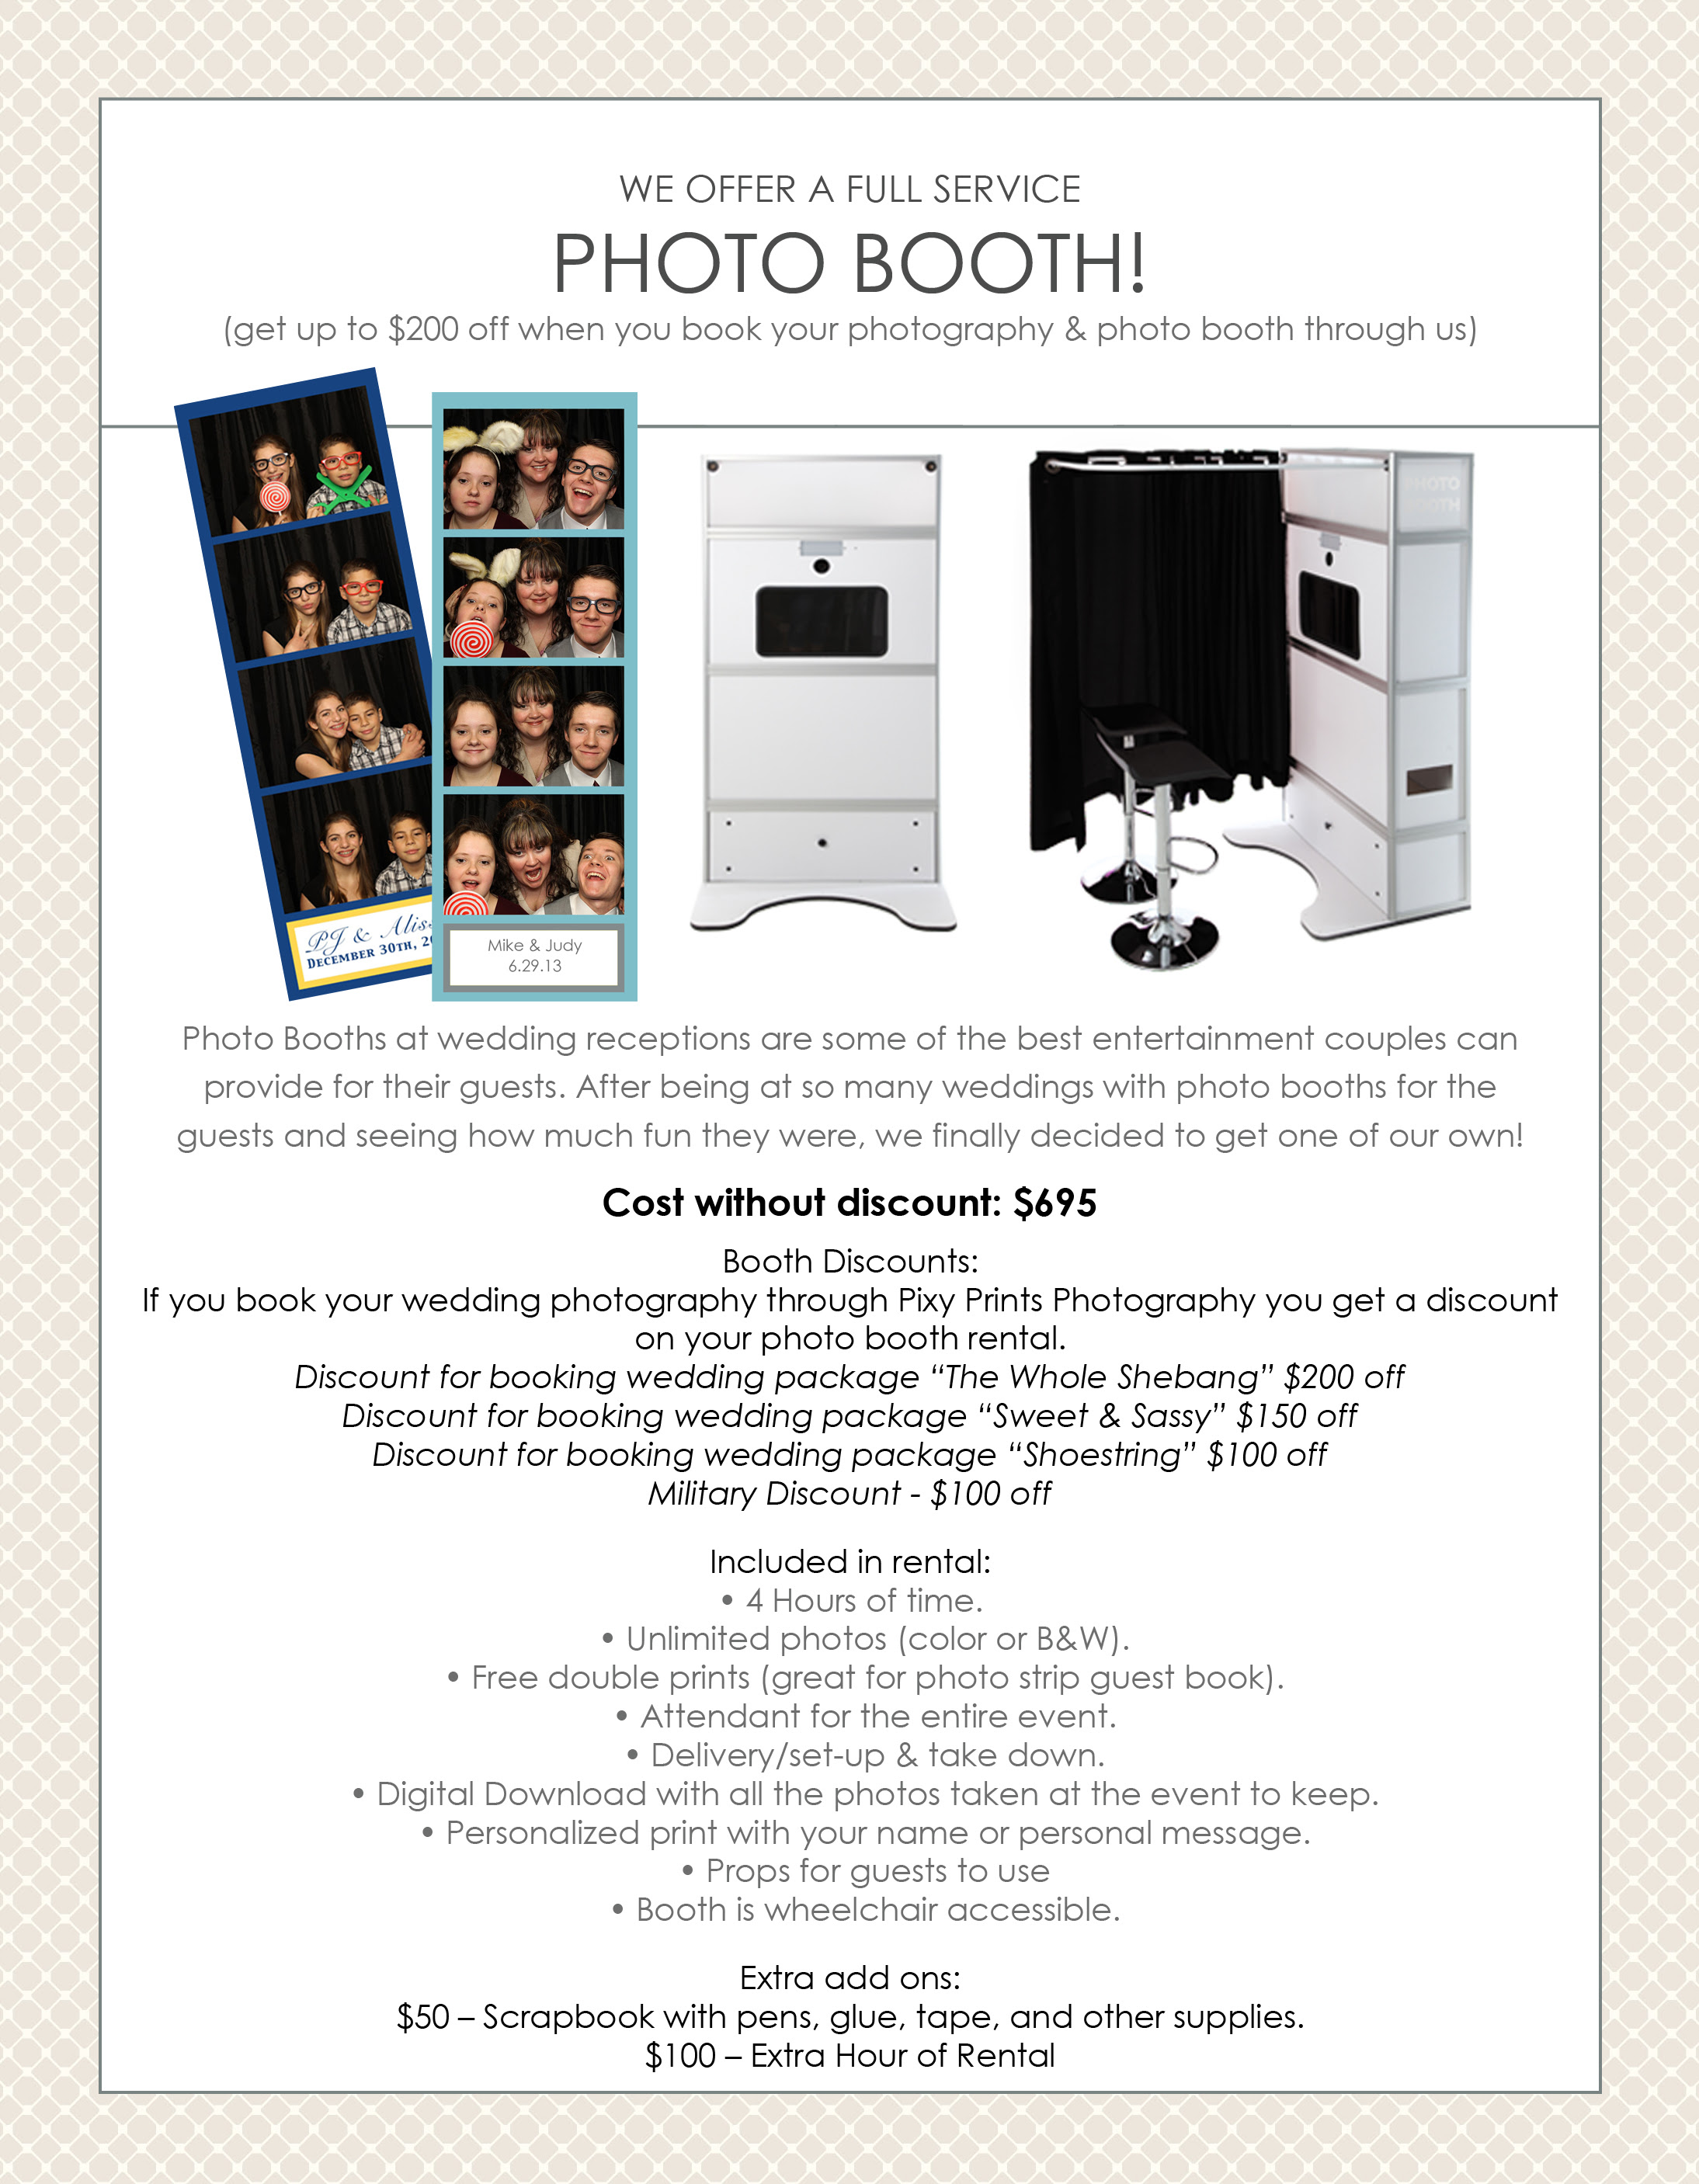 Photo Booth Pixy Prints Photography